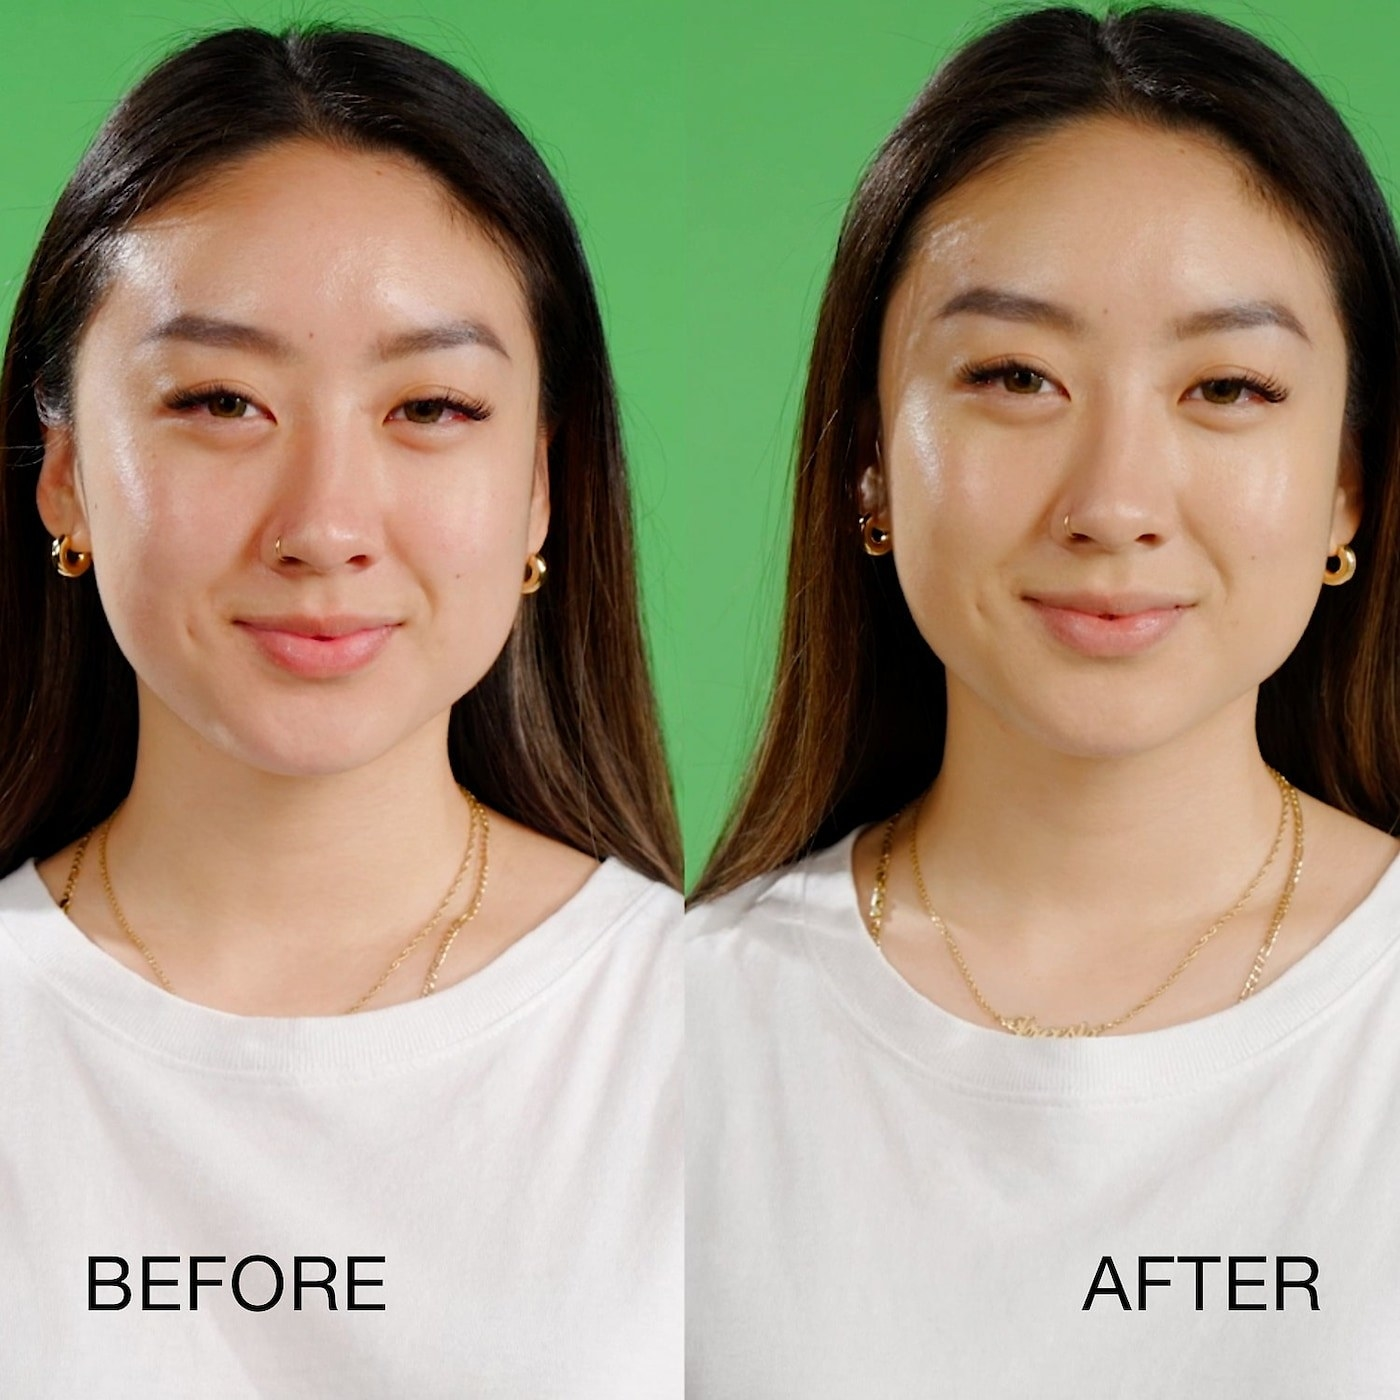 Model before and after using the treatment